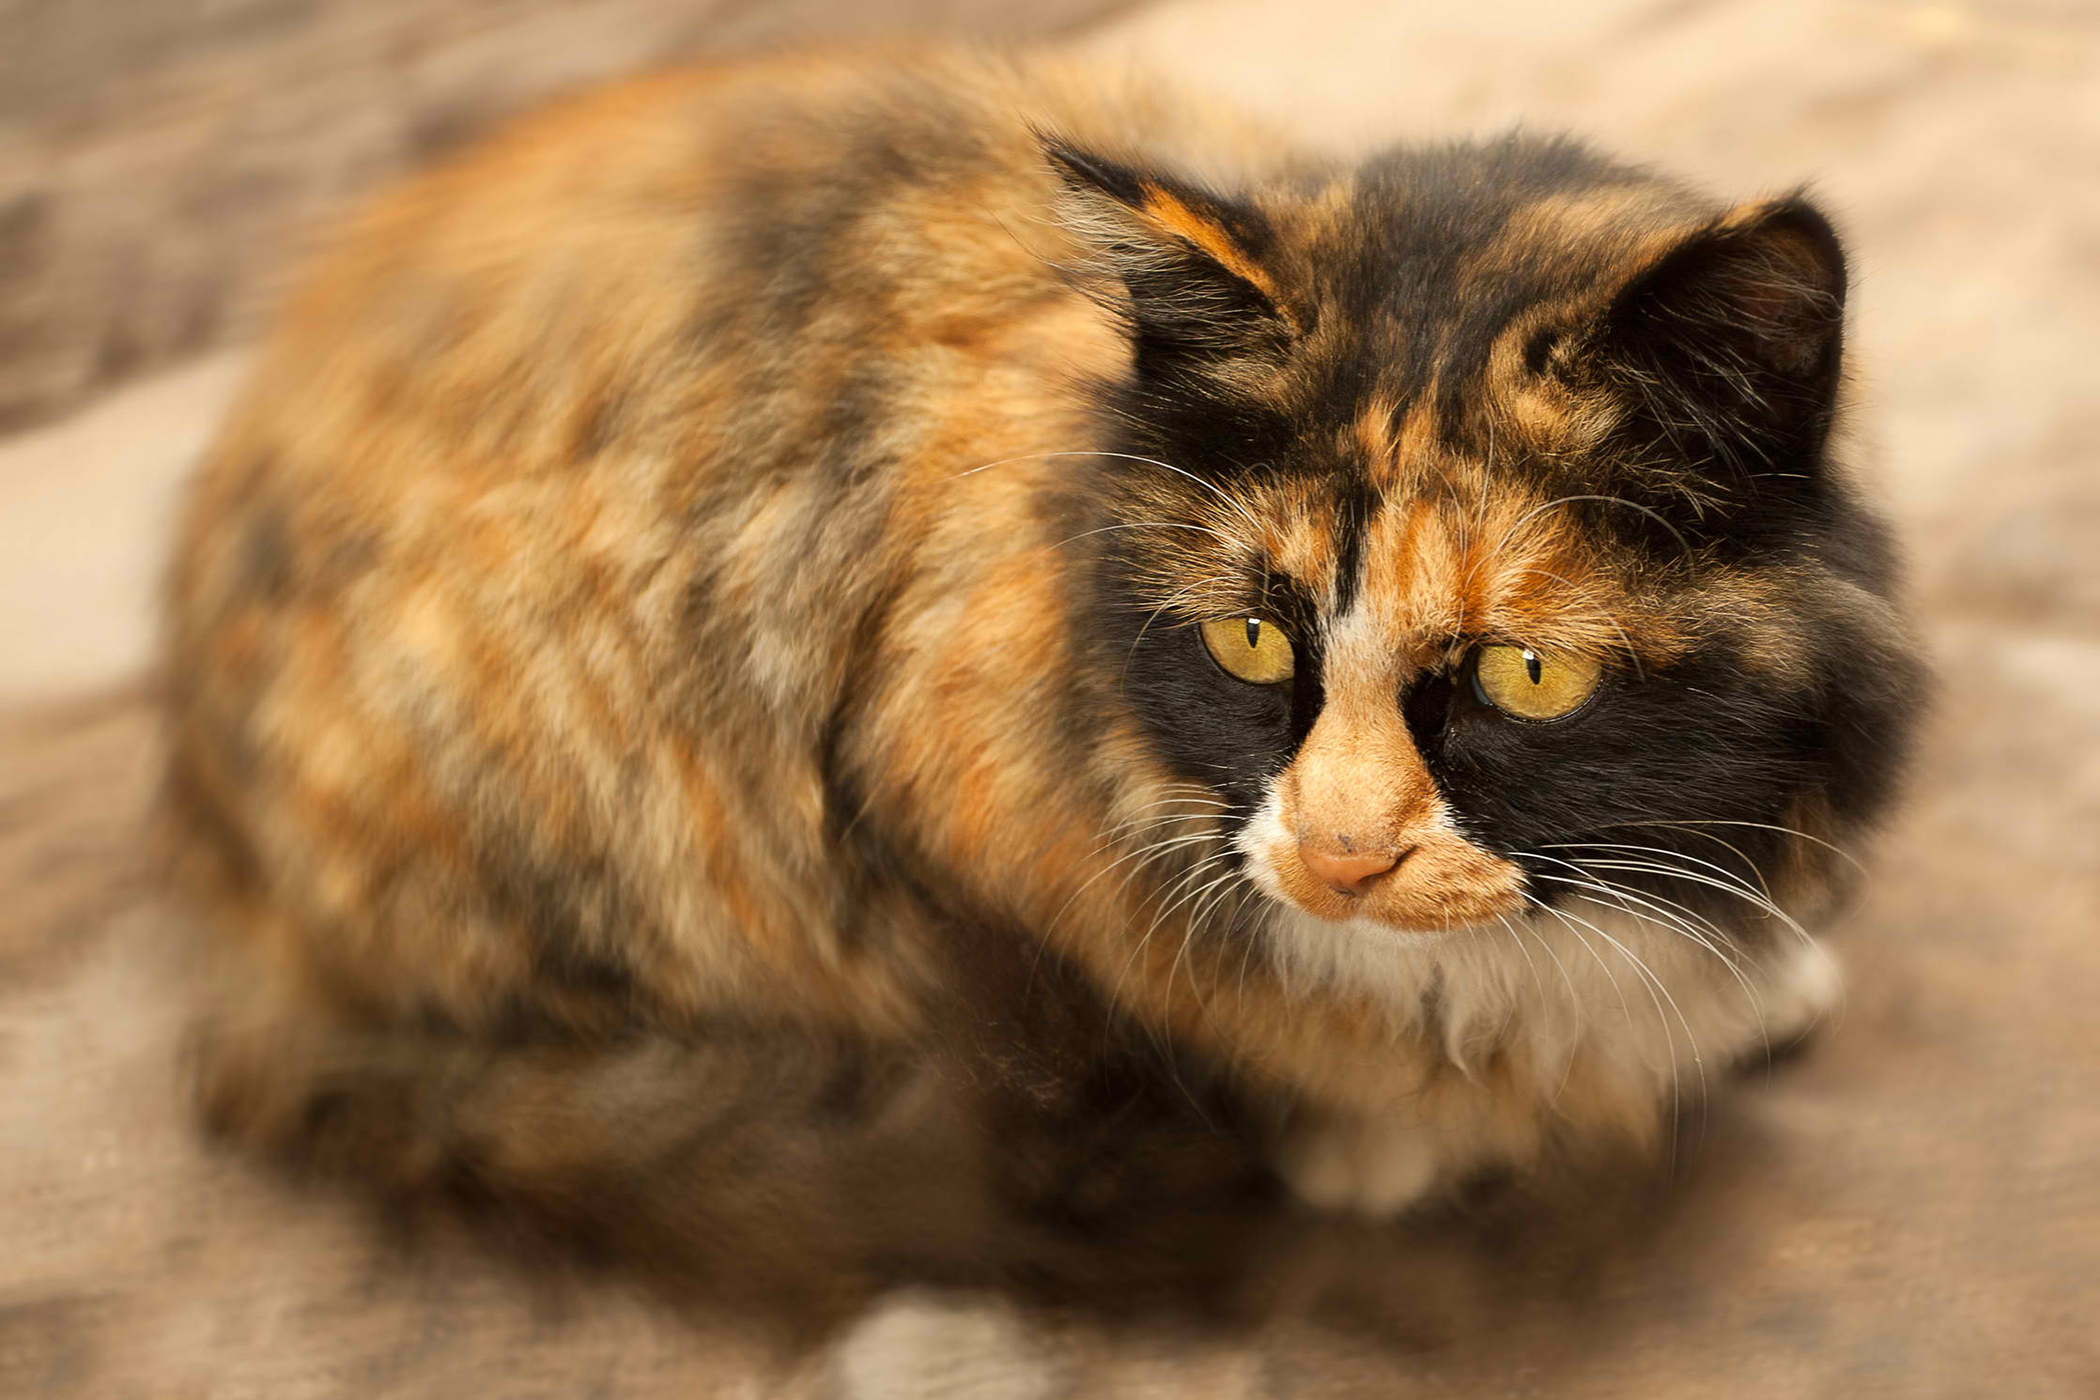 Side Effects Of Anxiety Medications in Cats